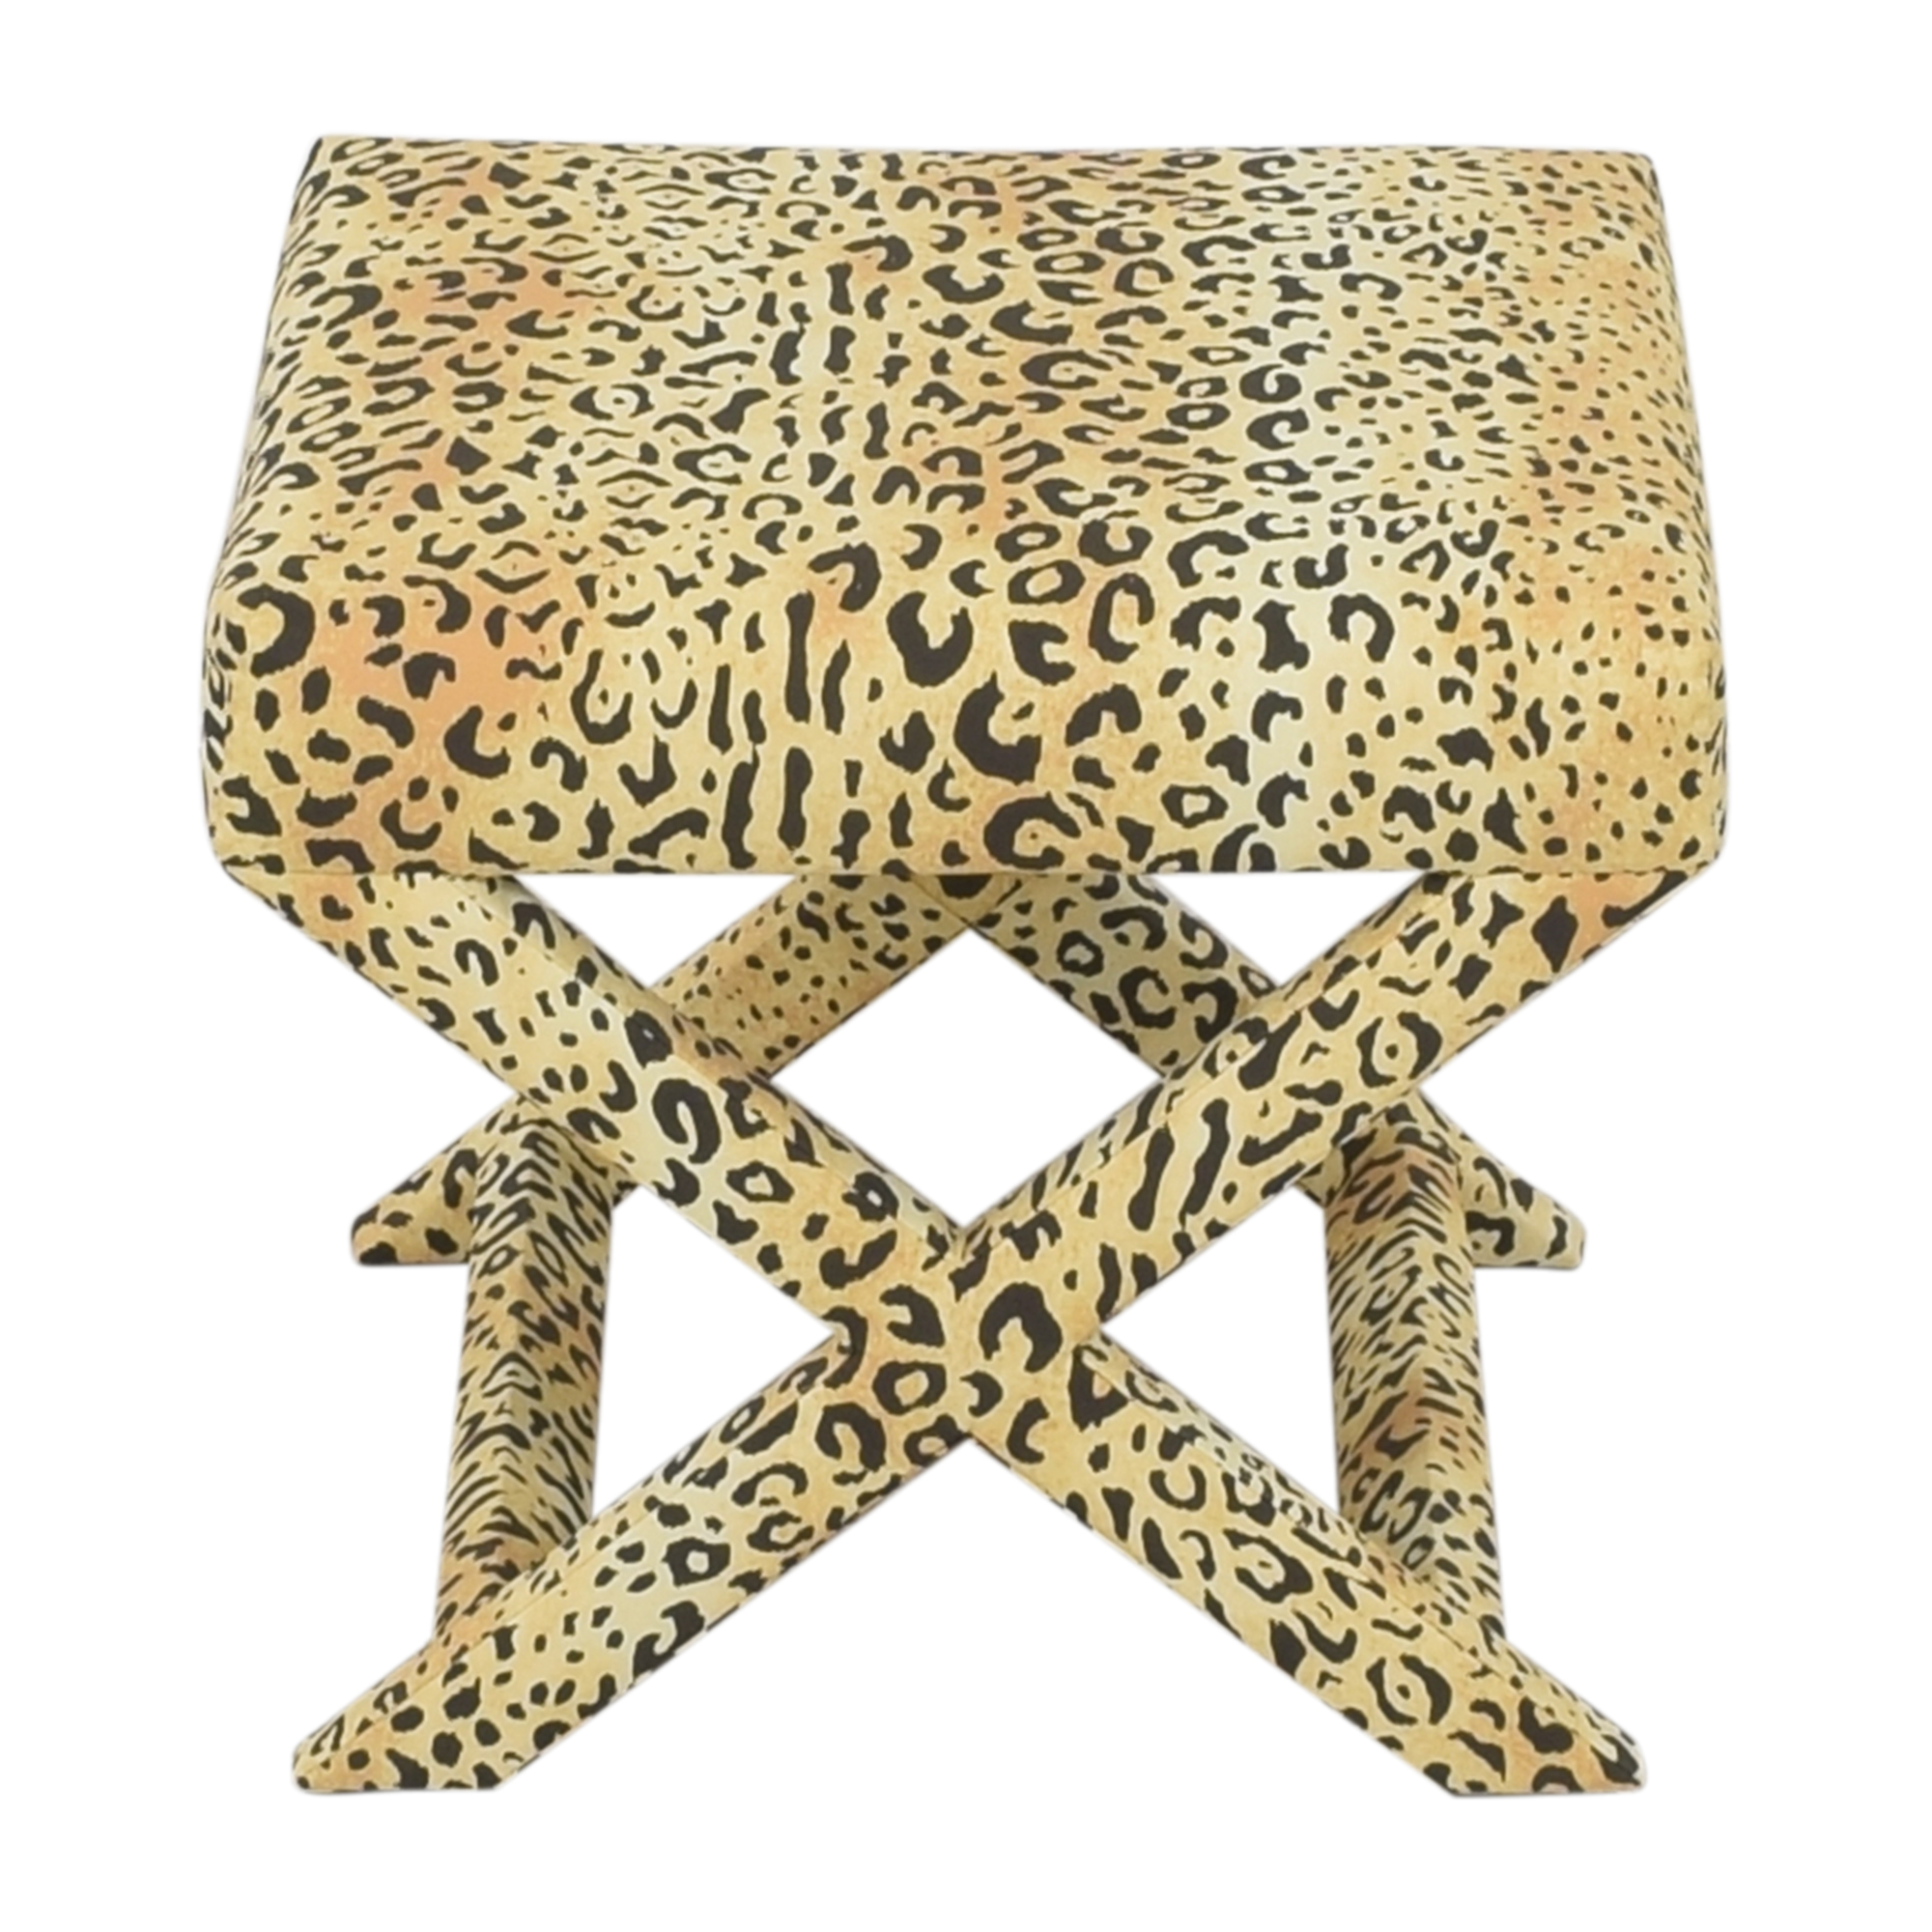 The Inside The Inside Leopard X Bench for sale